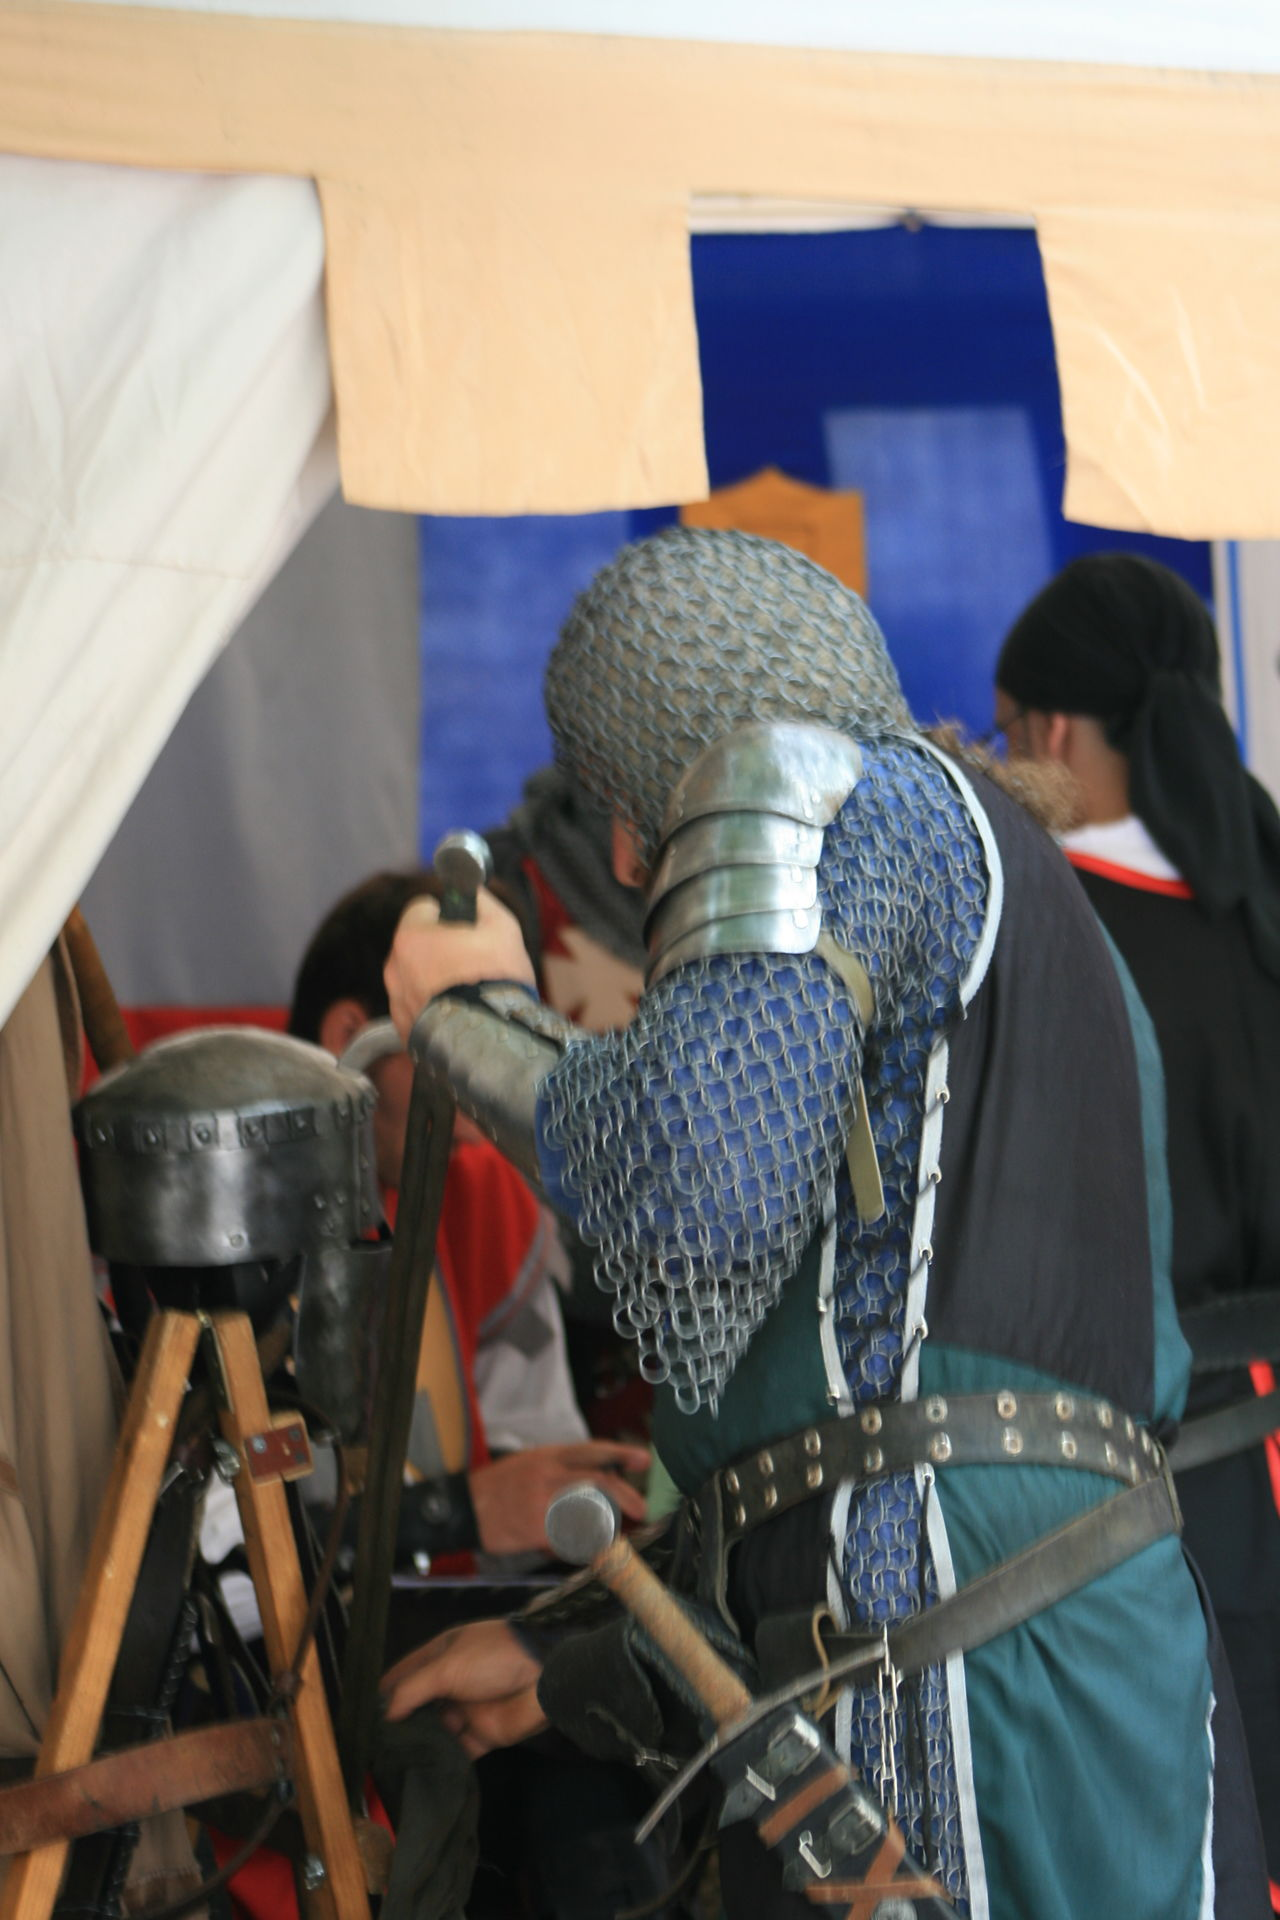 Armour Cavalier  Day Men Protection Real People Shield Sword Tent